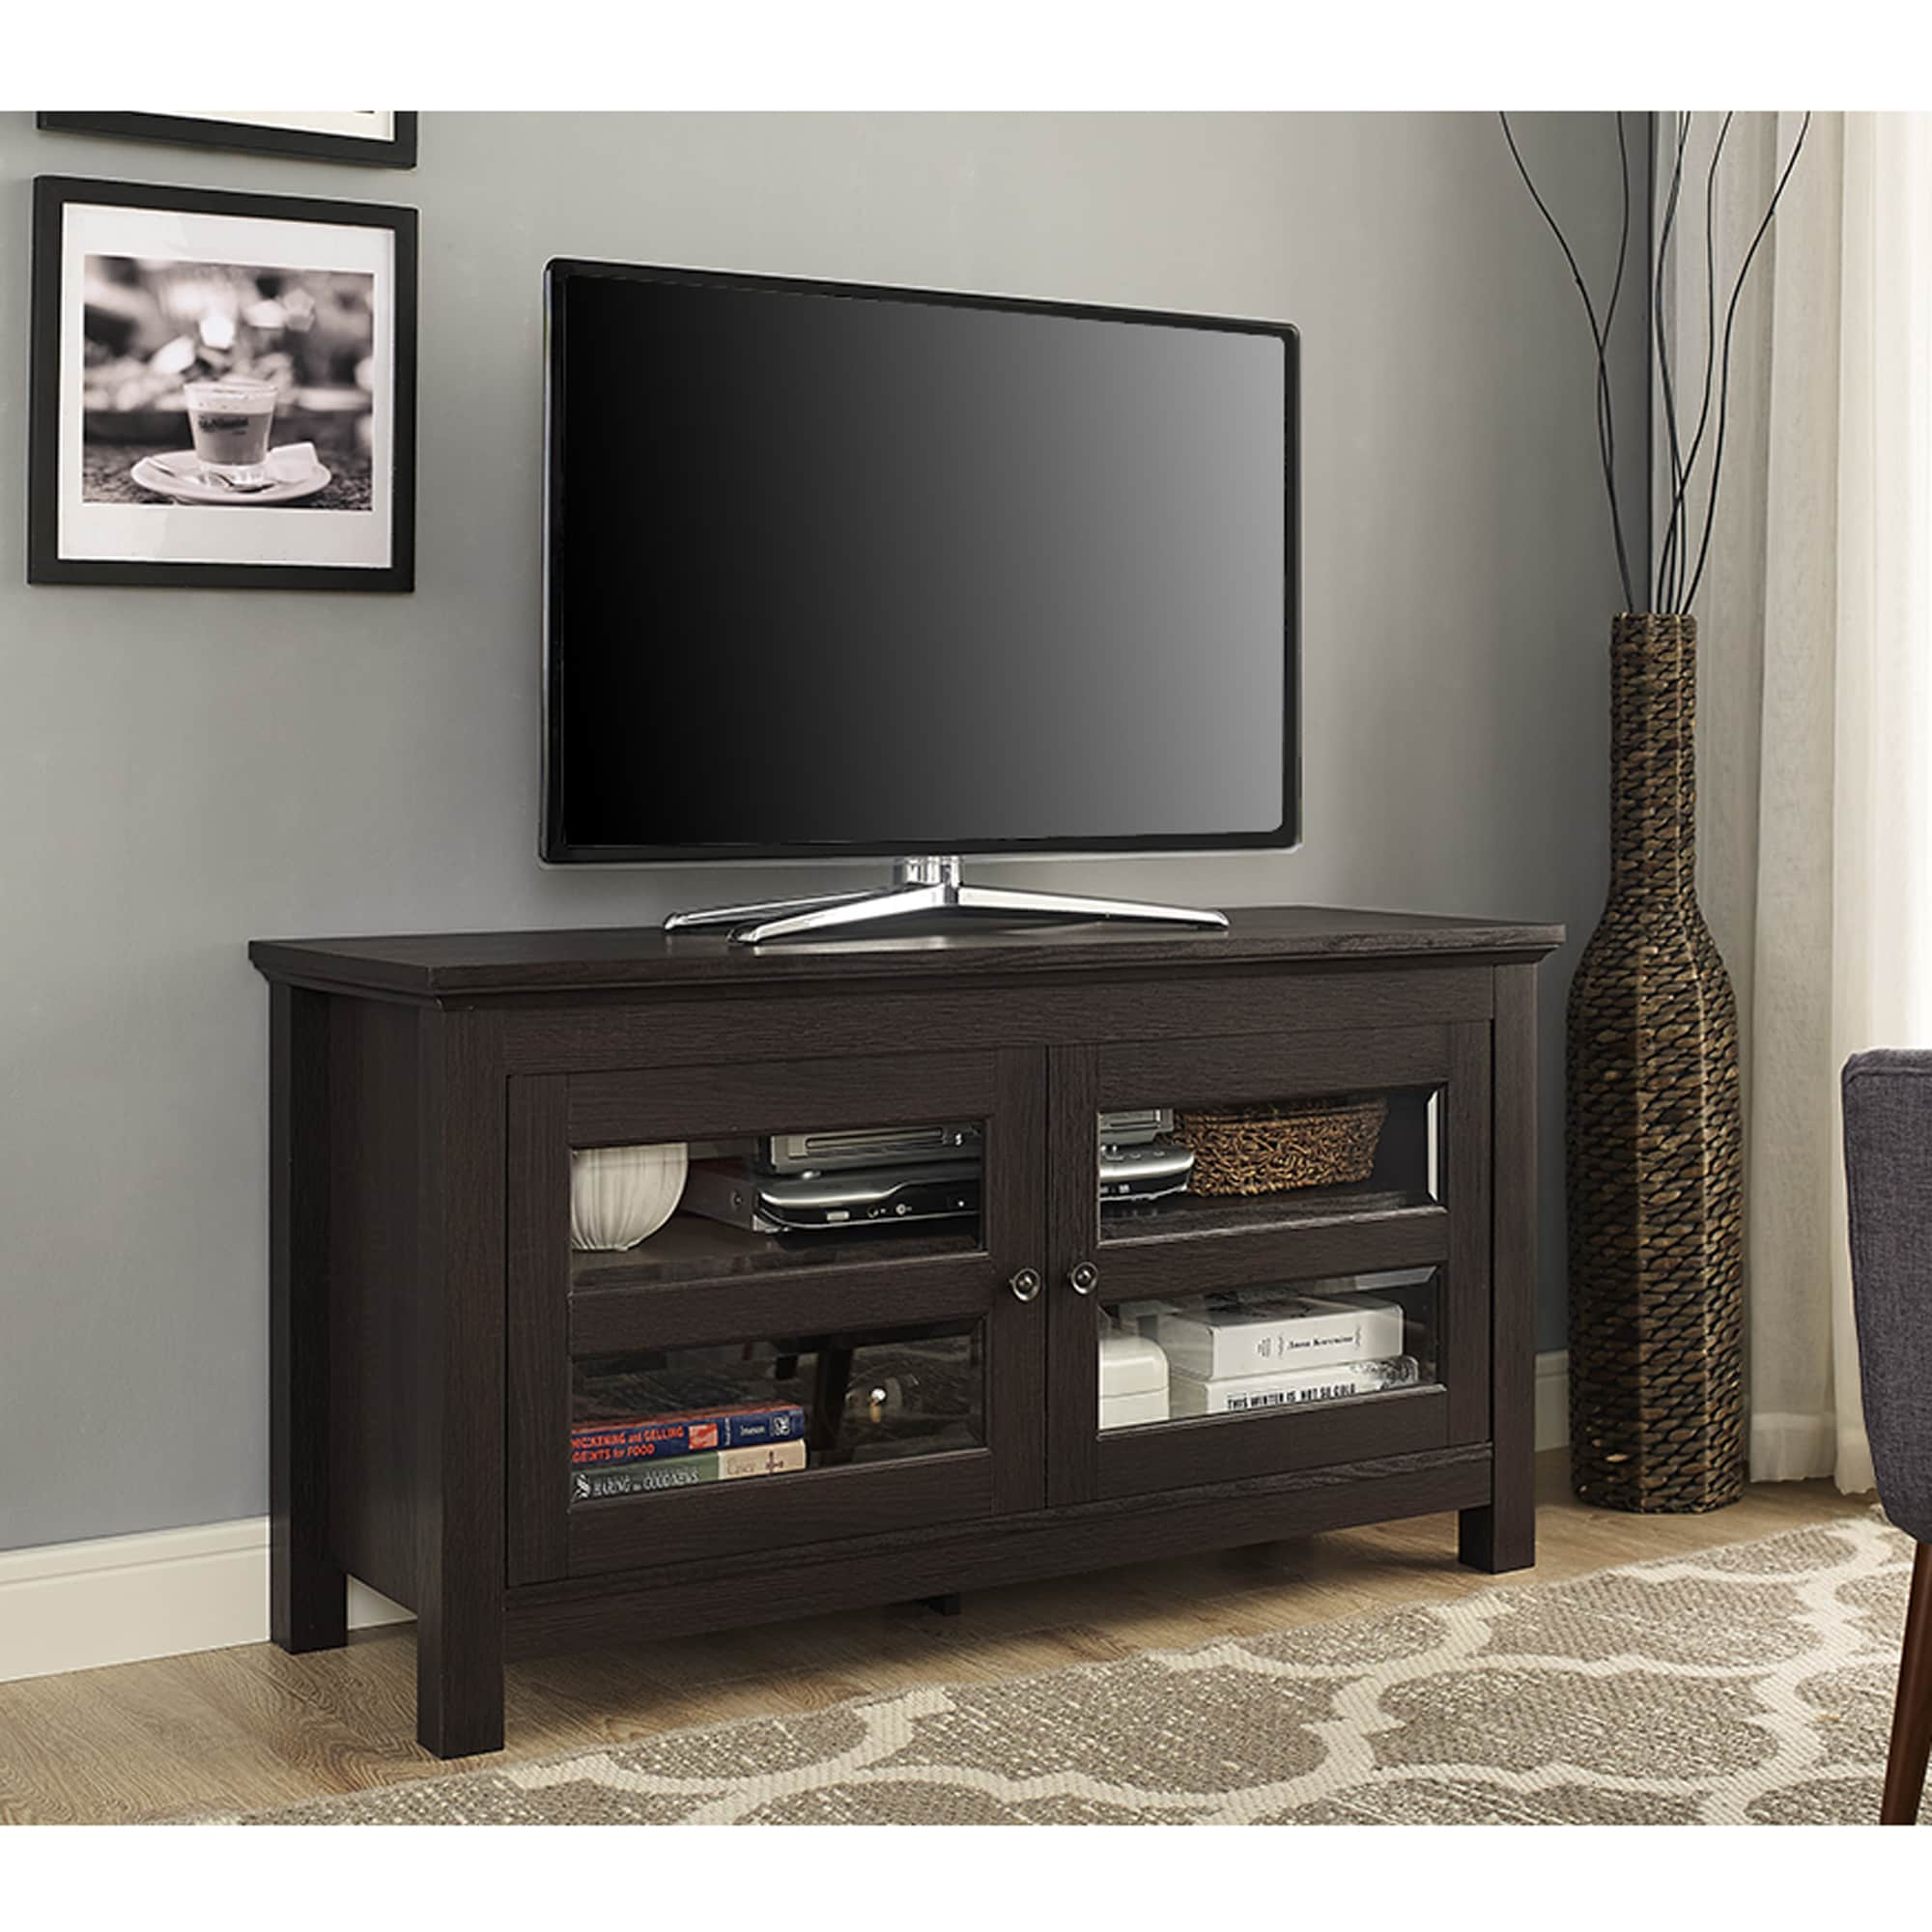 Clay Alder Home Hardy 44 Inch Espresso Wood Tv Stand Console With